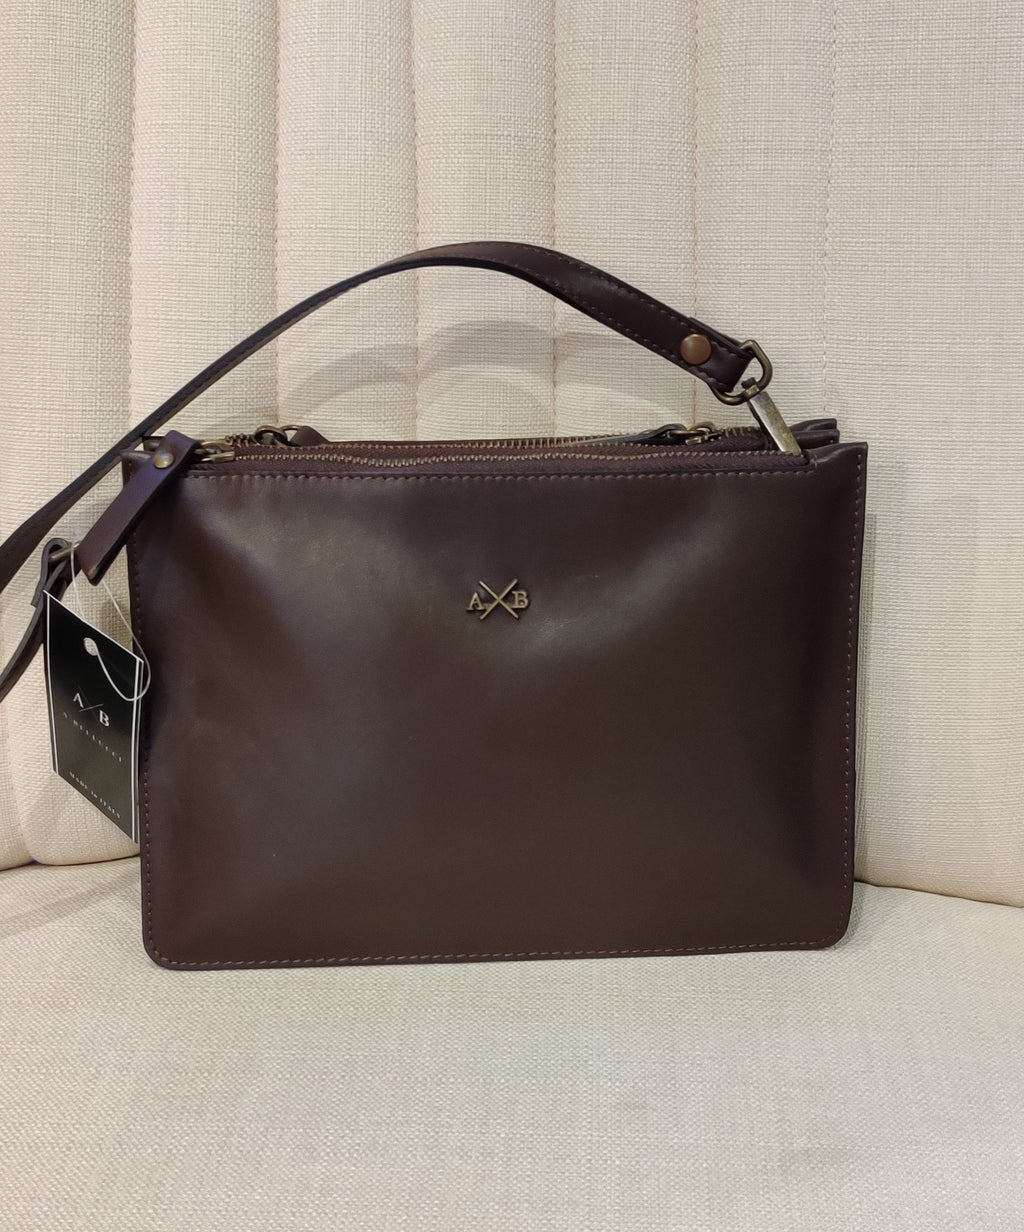 A&B Brown Leather Crossed Body bag- Made in Italy